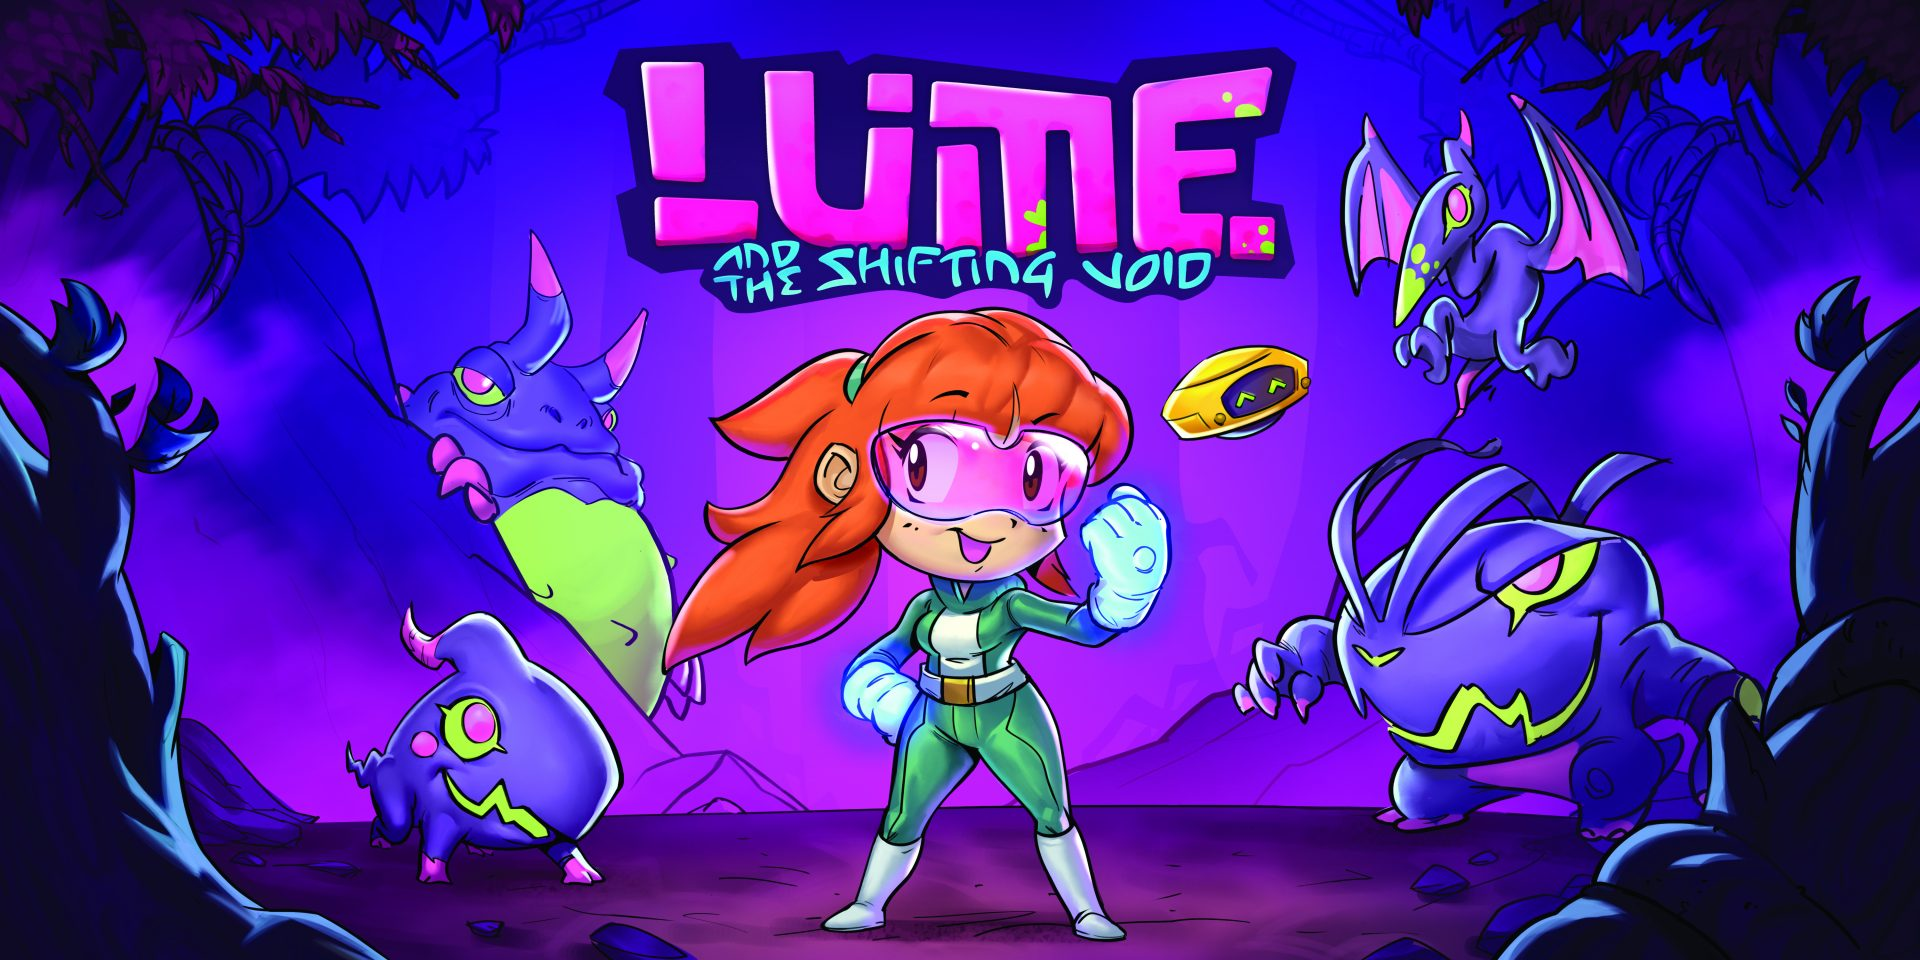 Lume & The Shifting Void